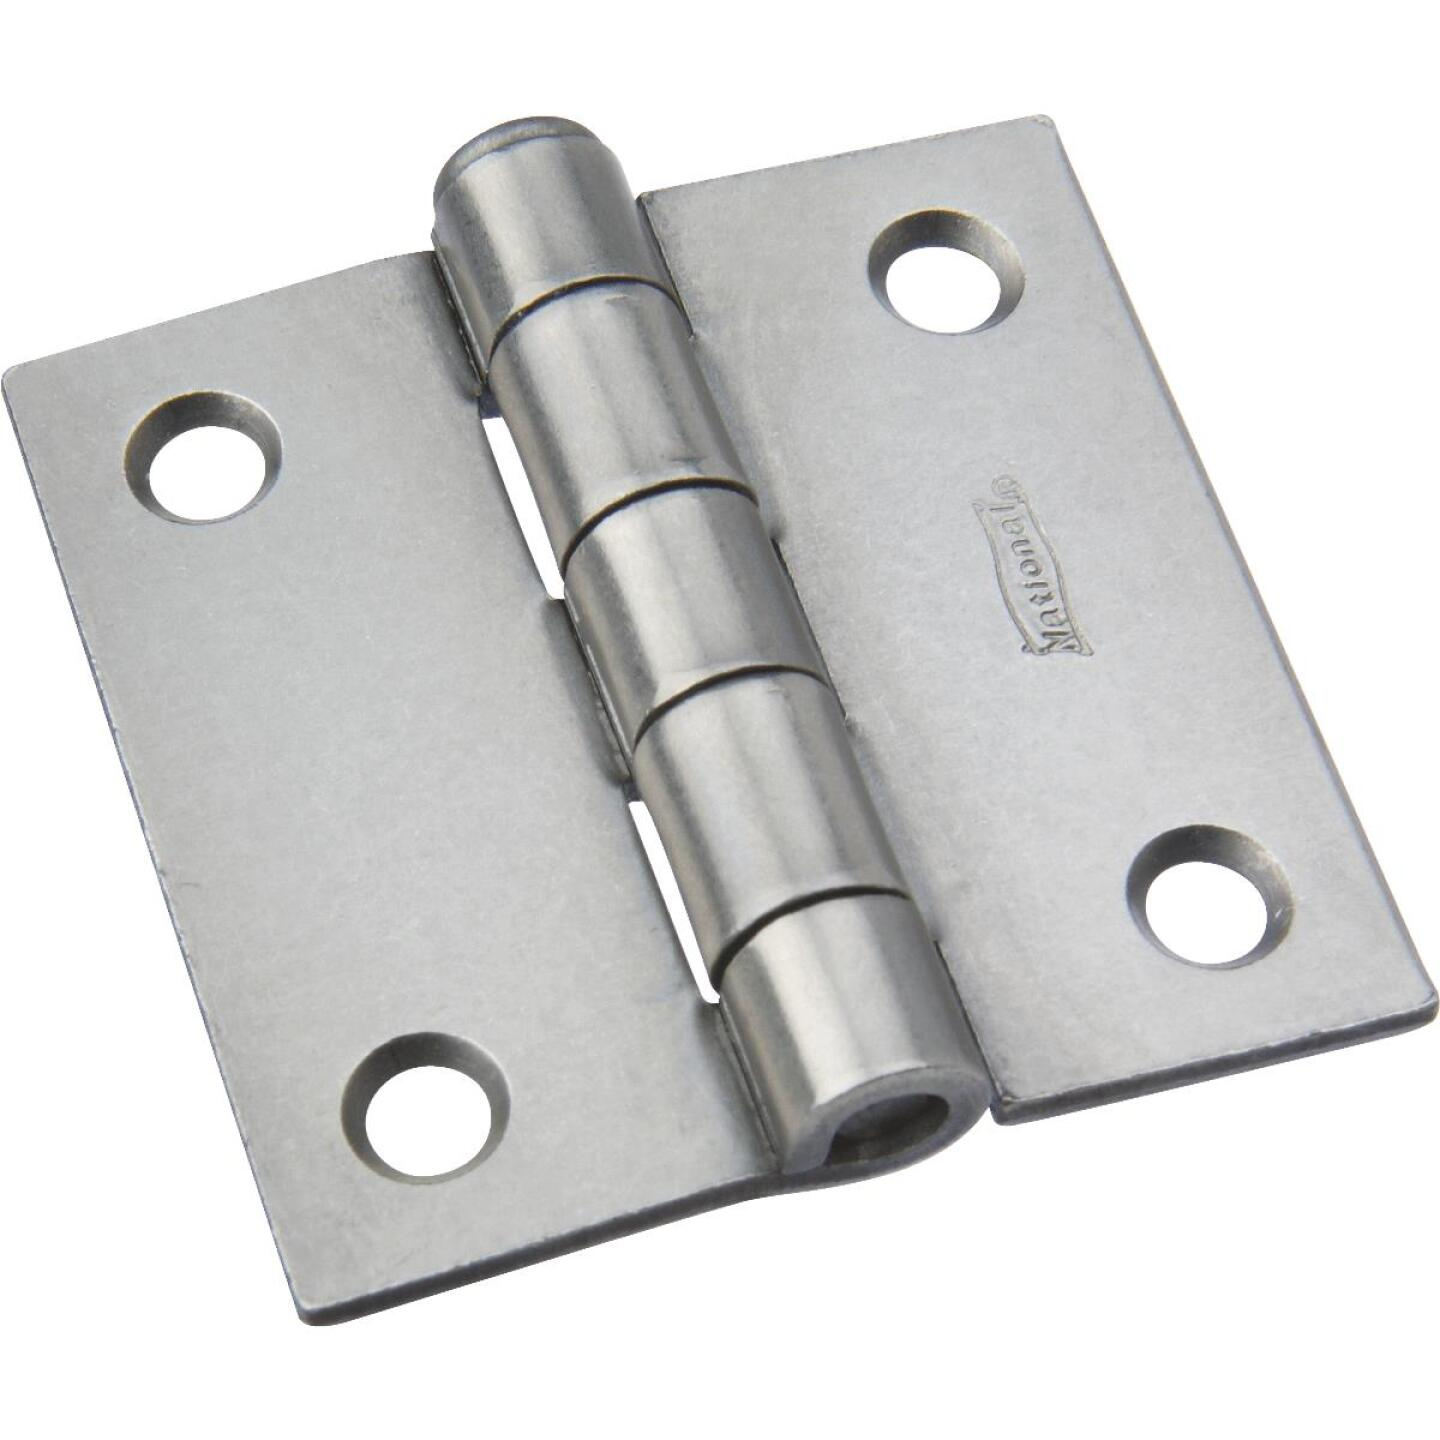 National 2 In. Square Plain Steel Broad Door Hinge Image 1